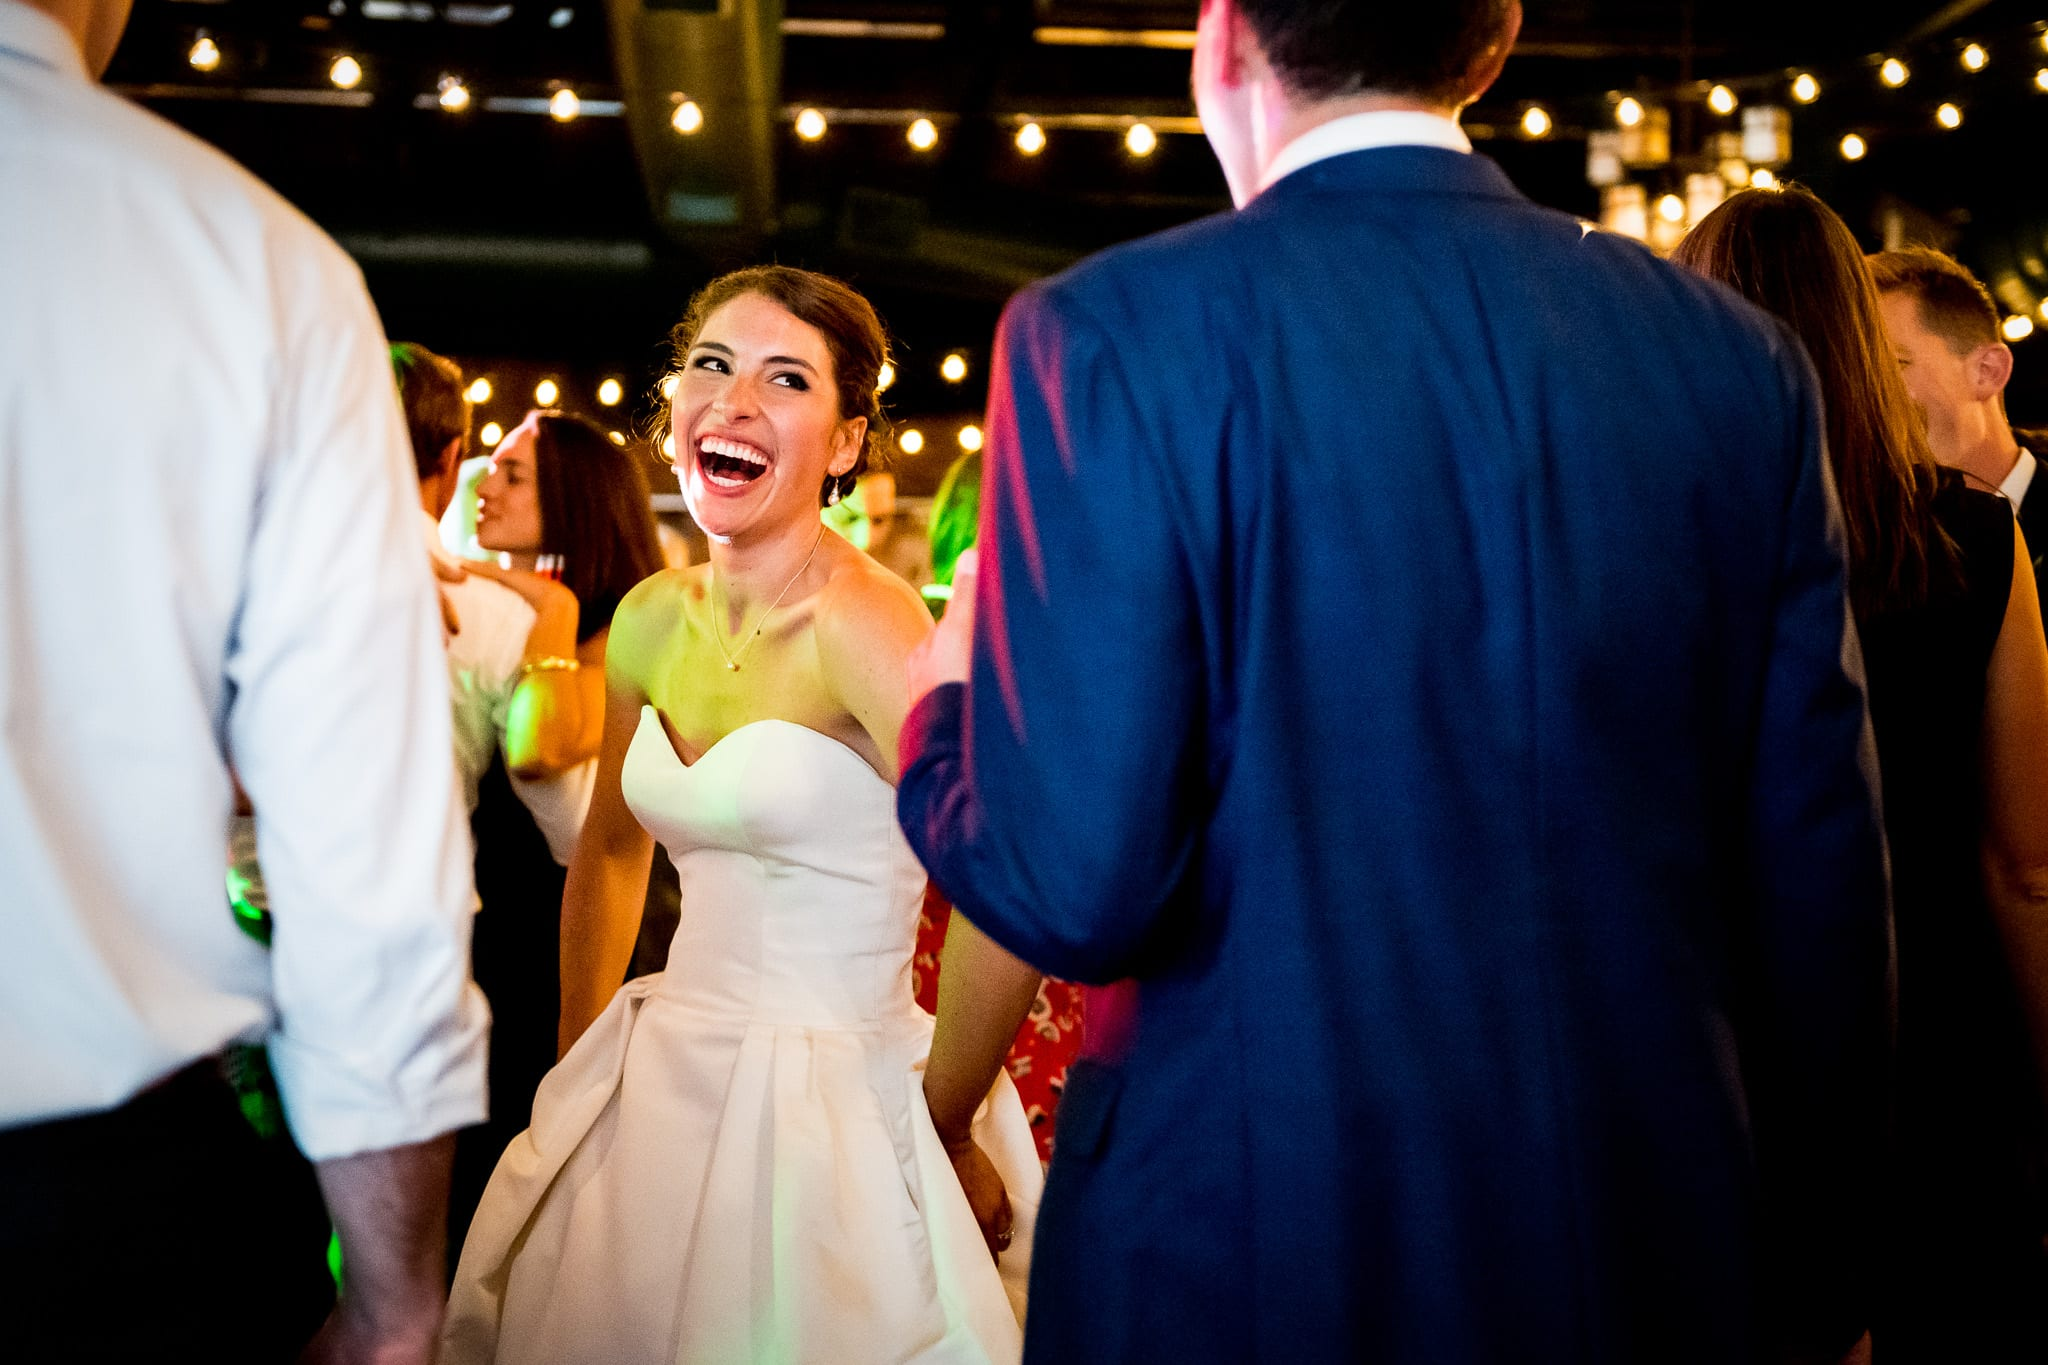 Bride shows of hug smile towards her new husband on the dance floor during their wedding